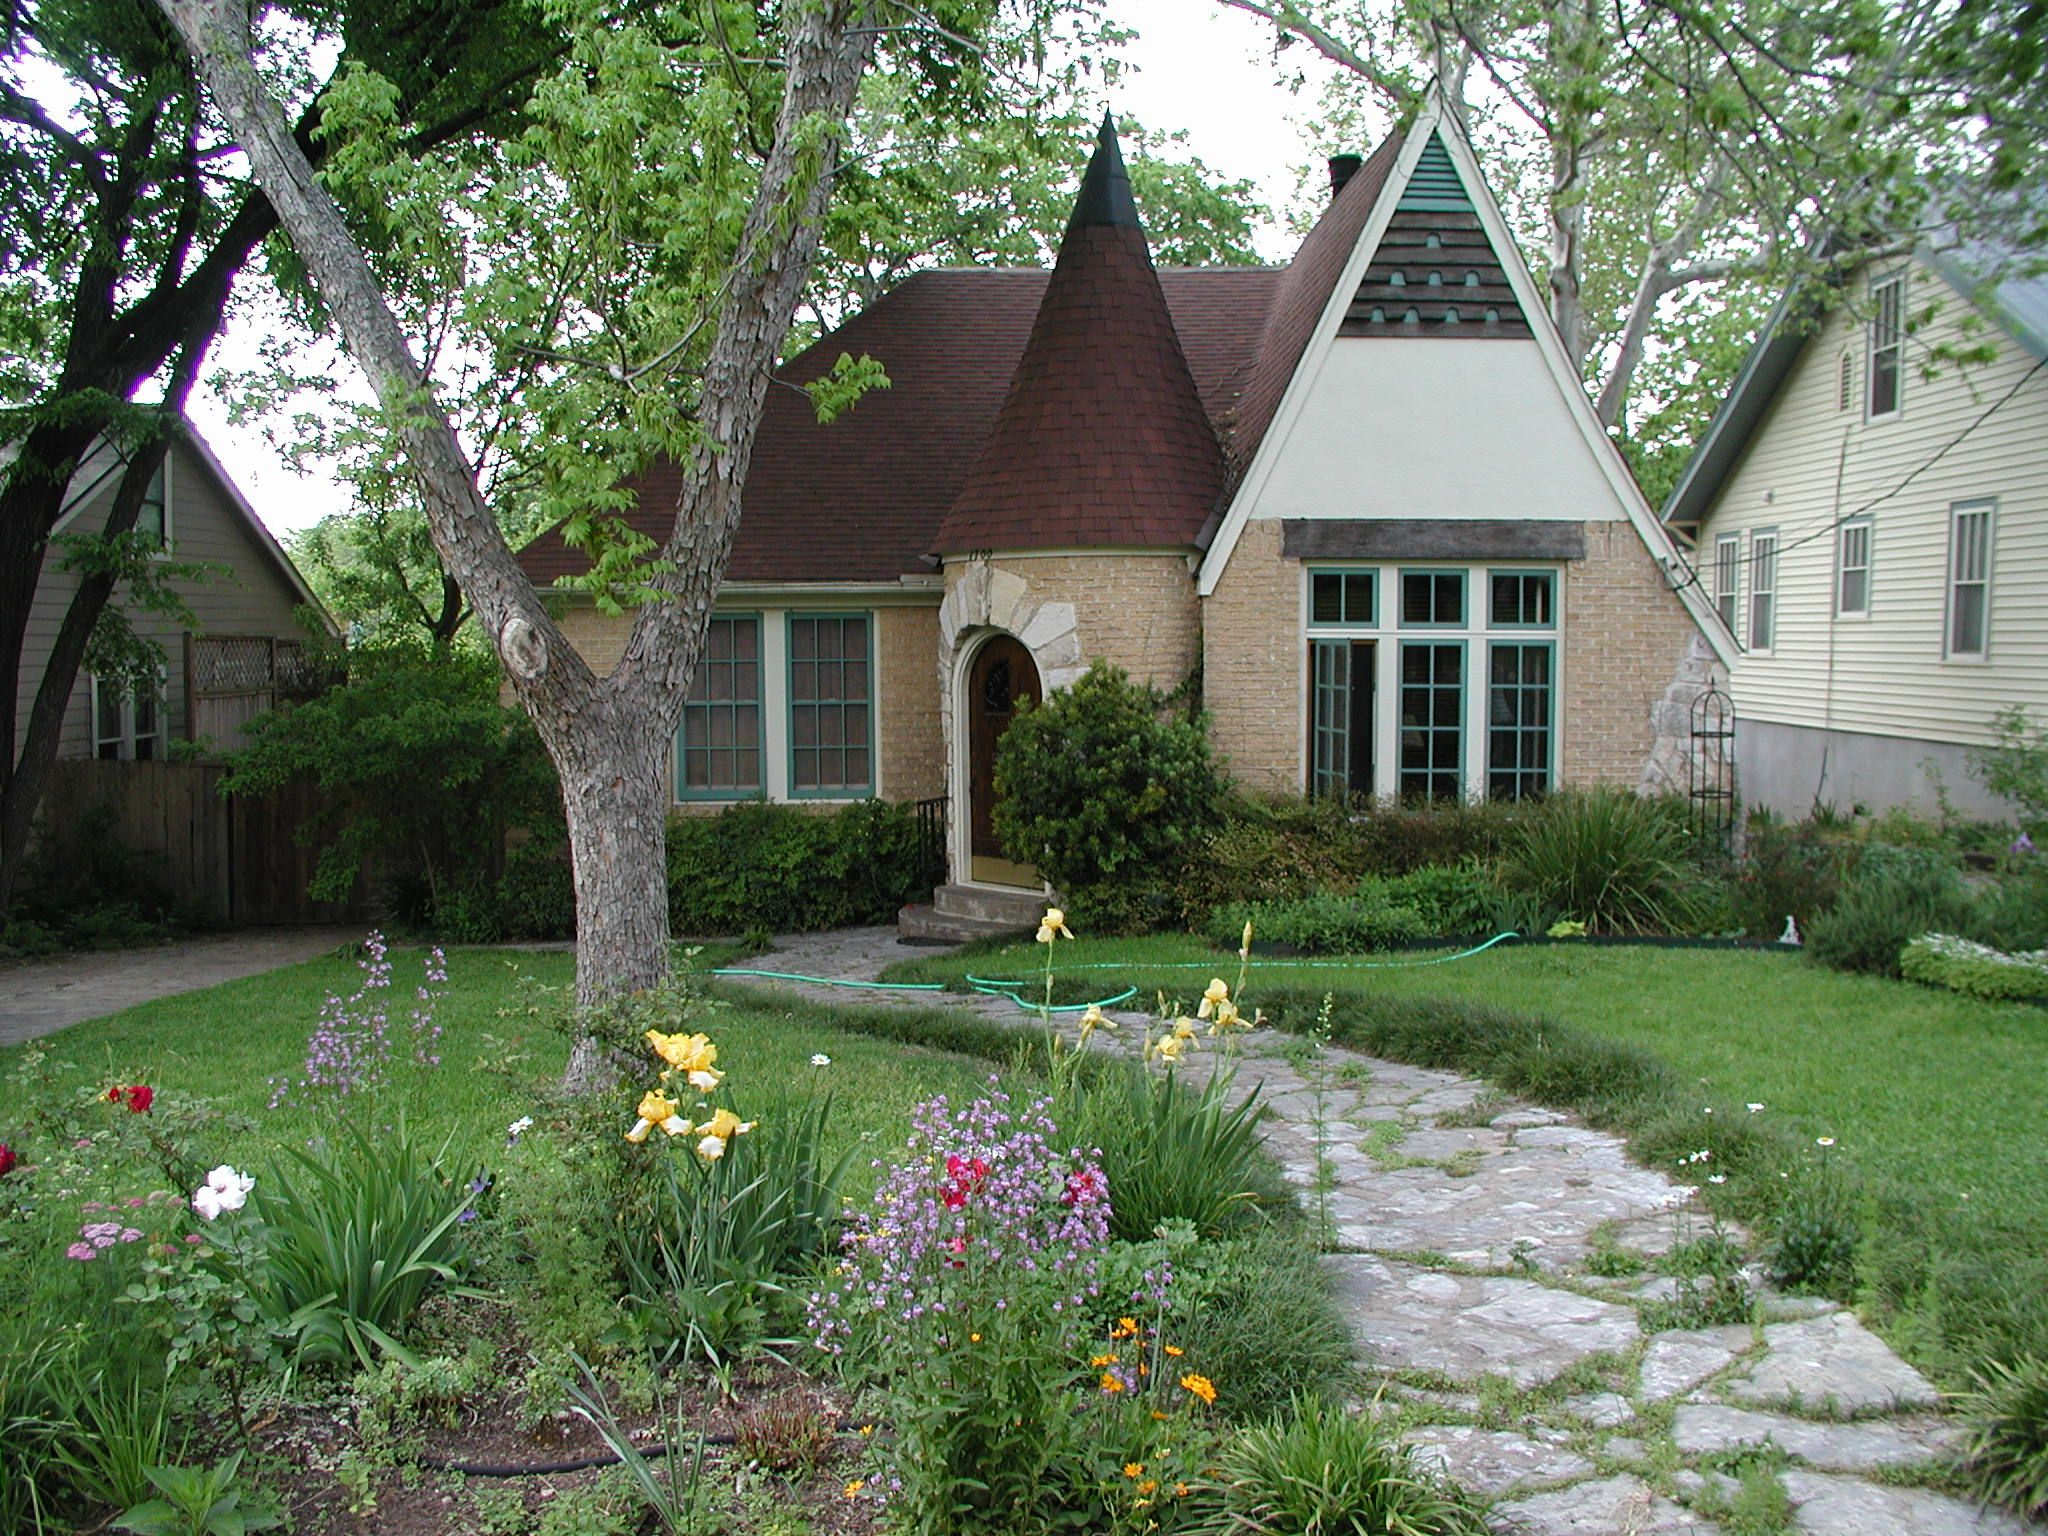 French eclectic style home in the Austin Texas historic